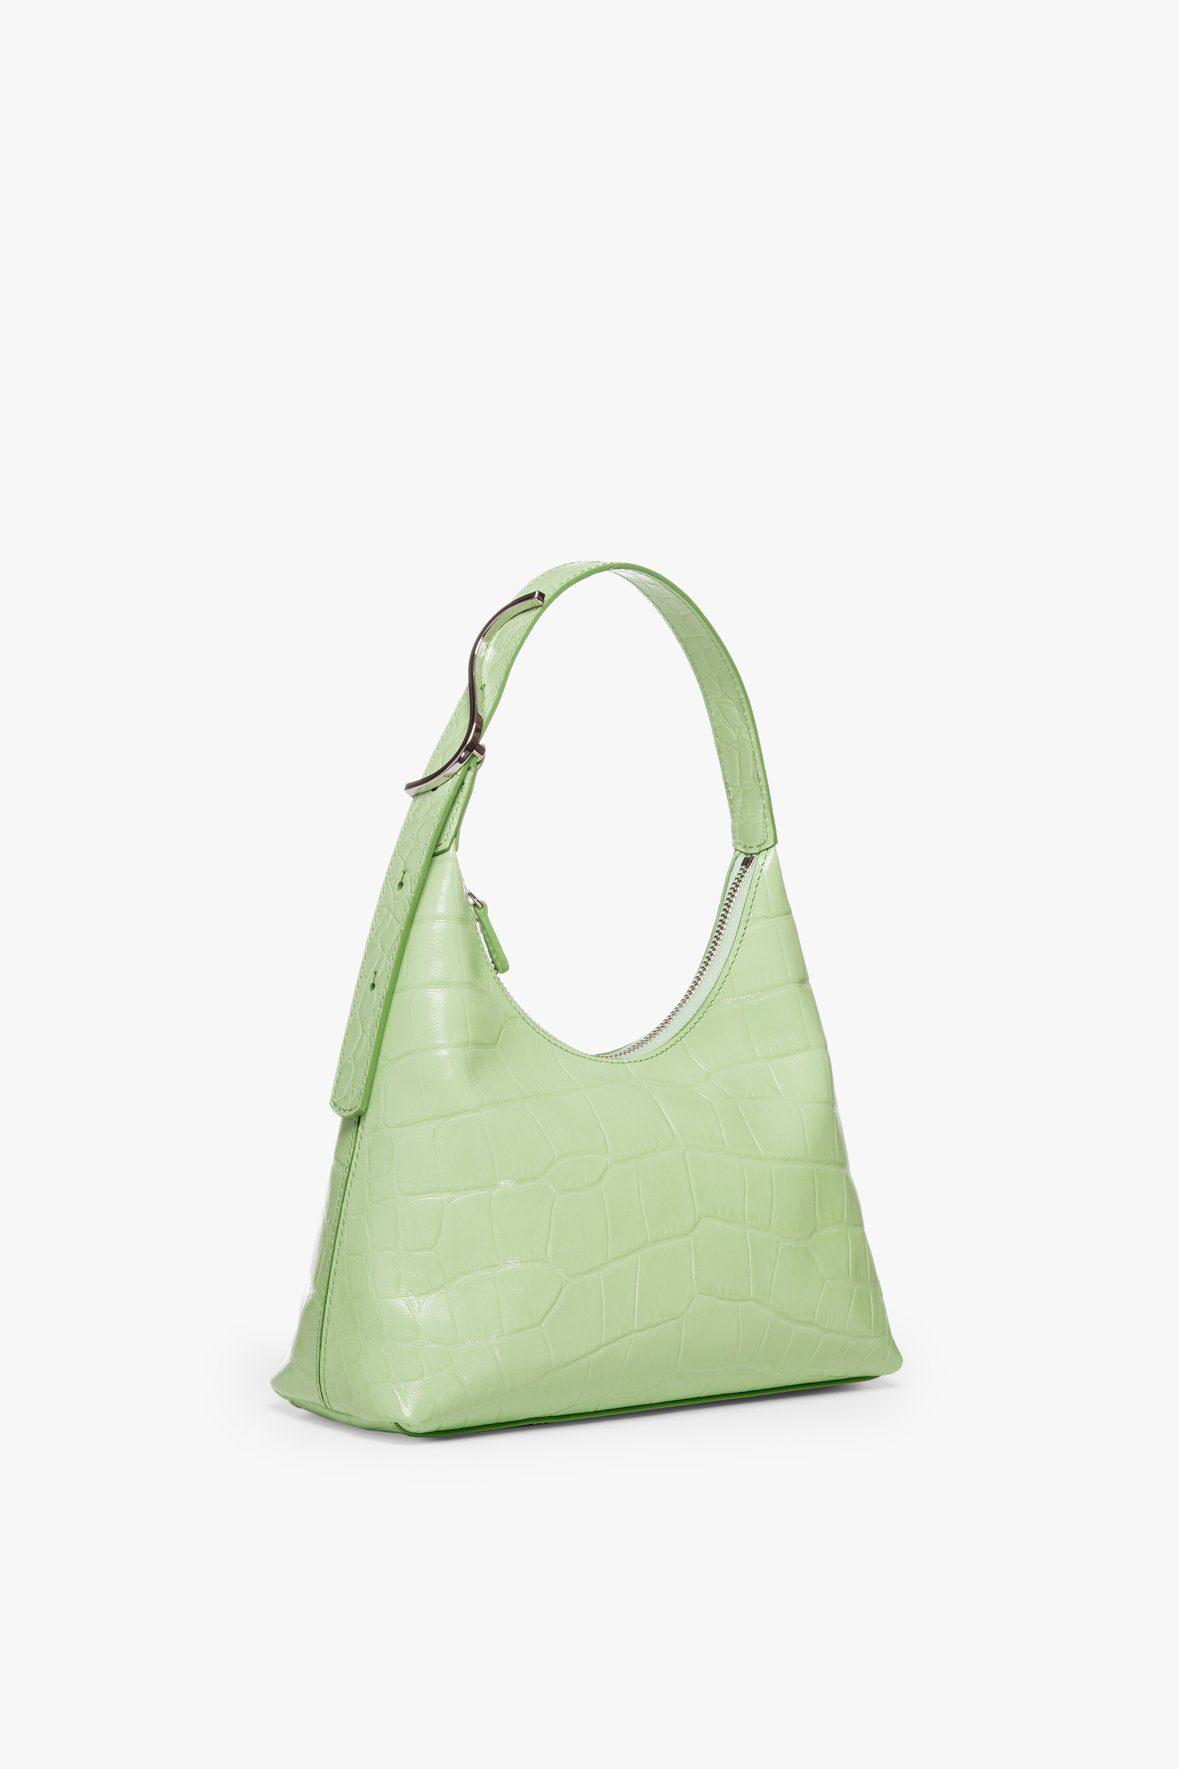 SCOTTY BAG   AGAVE CROC EMBOSSED